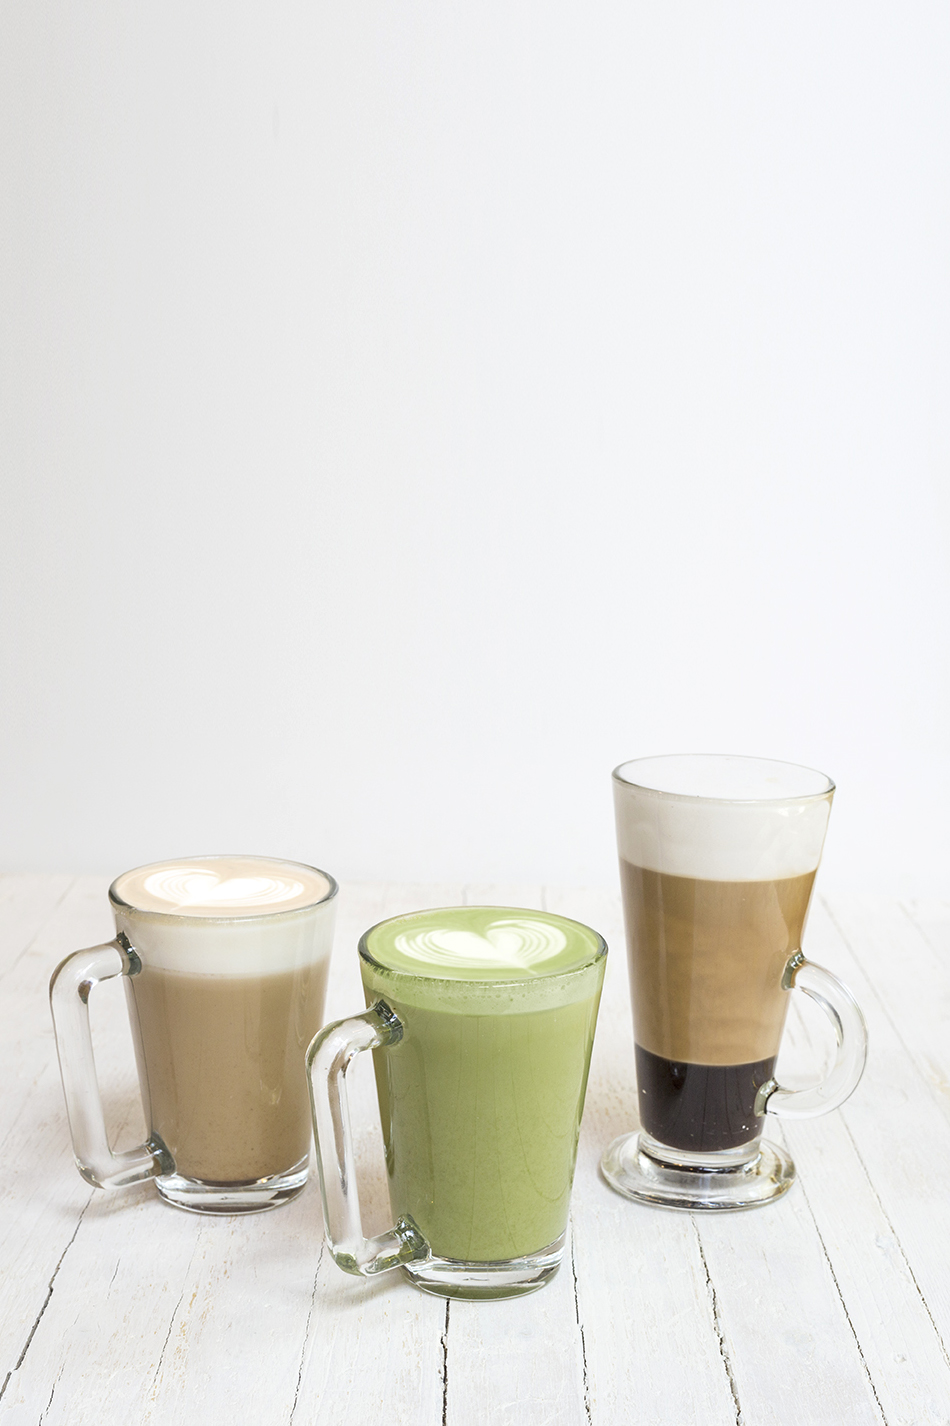 OUR LATTES